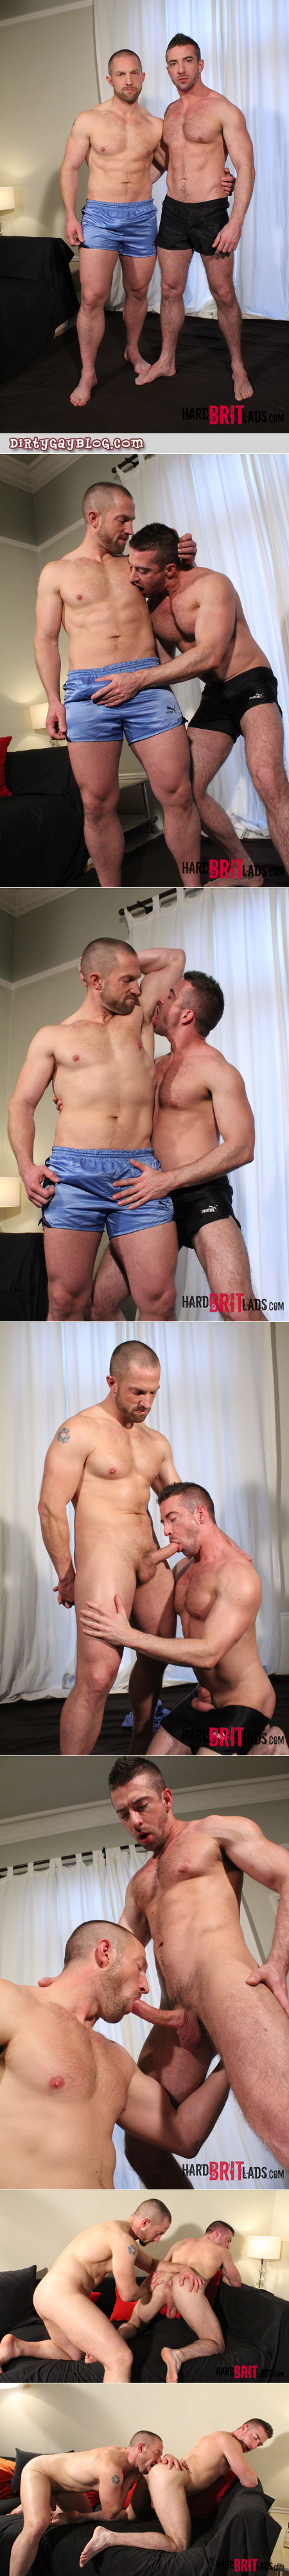 Scruffy muscle hunks in silky sports shorts having gay sex.